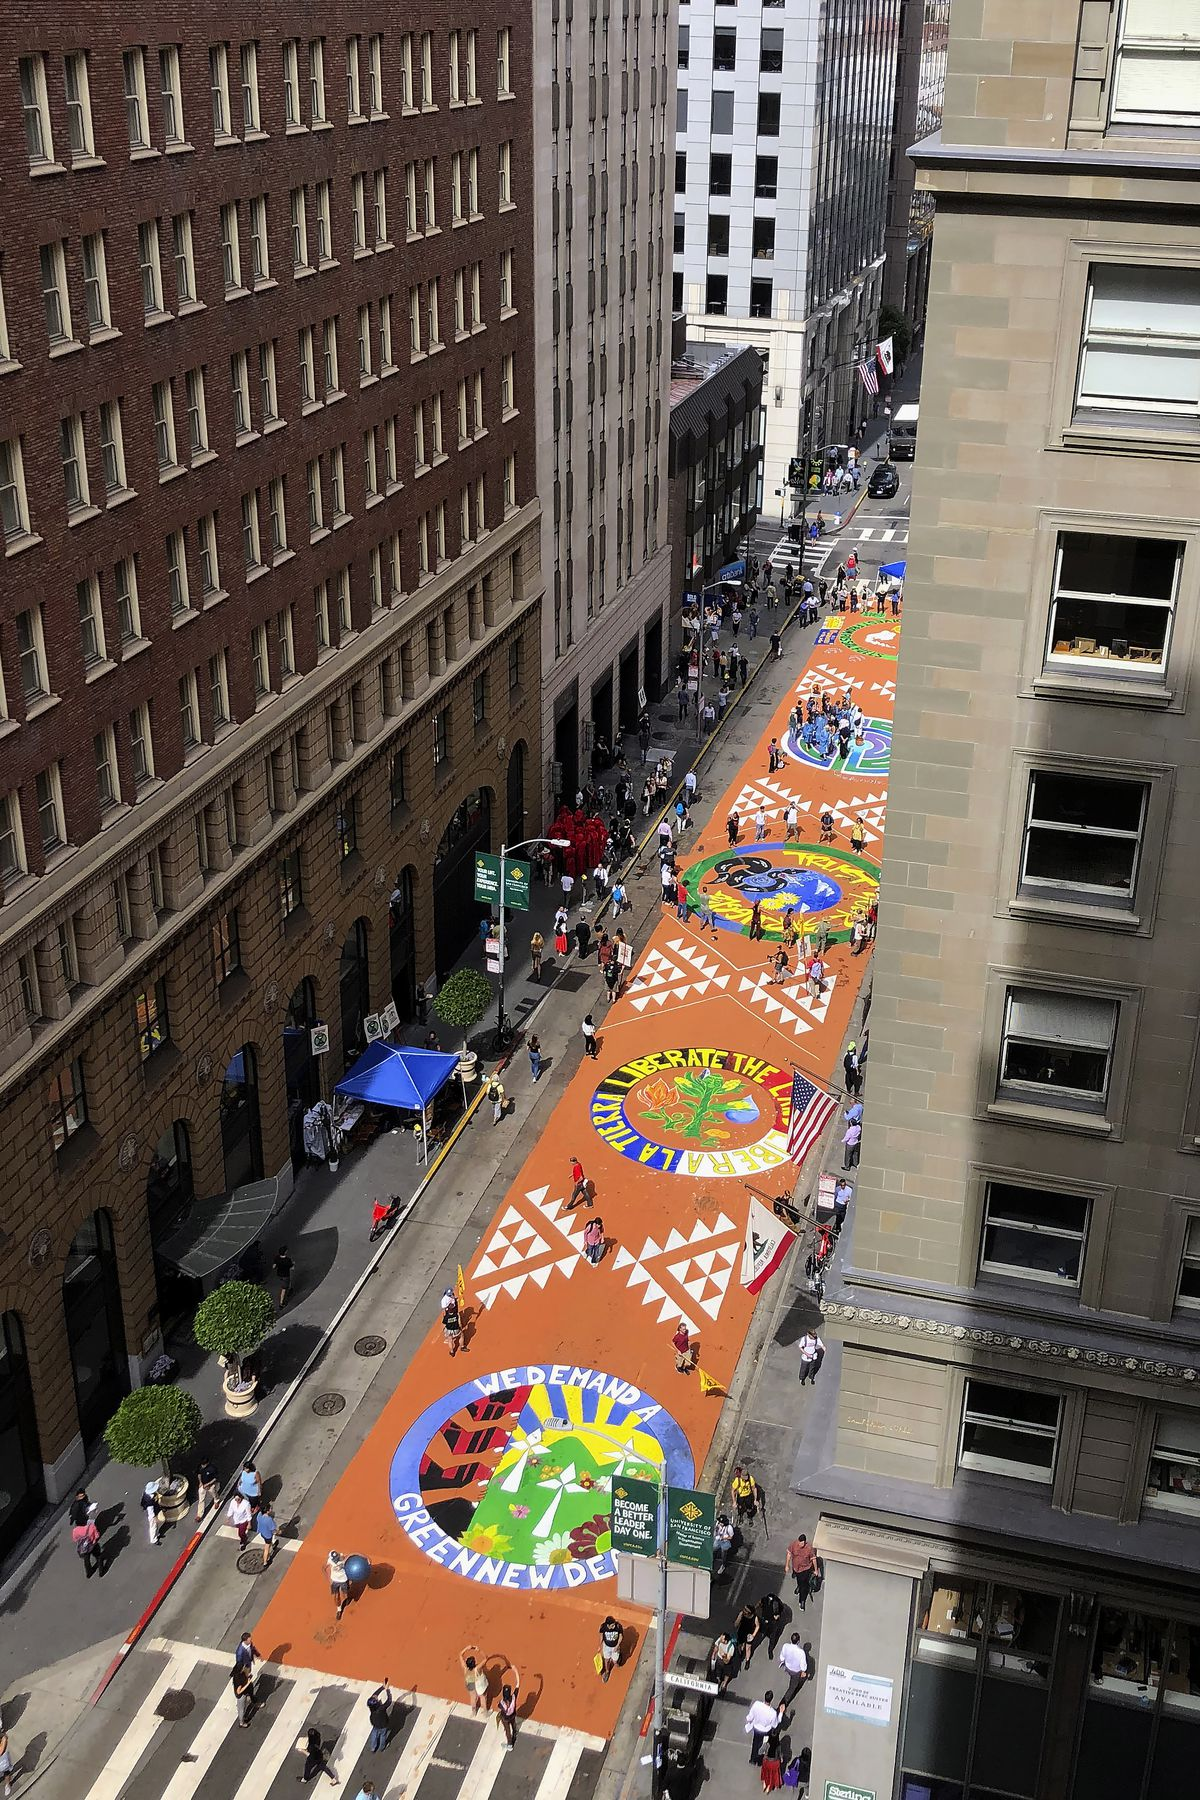 Block-long mural on pavement as seen from an office building on street.